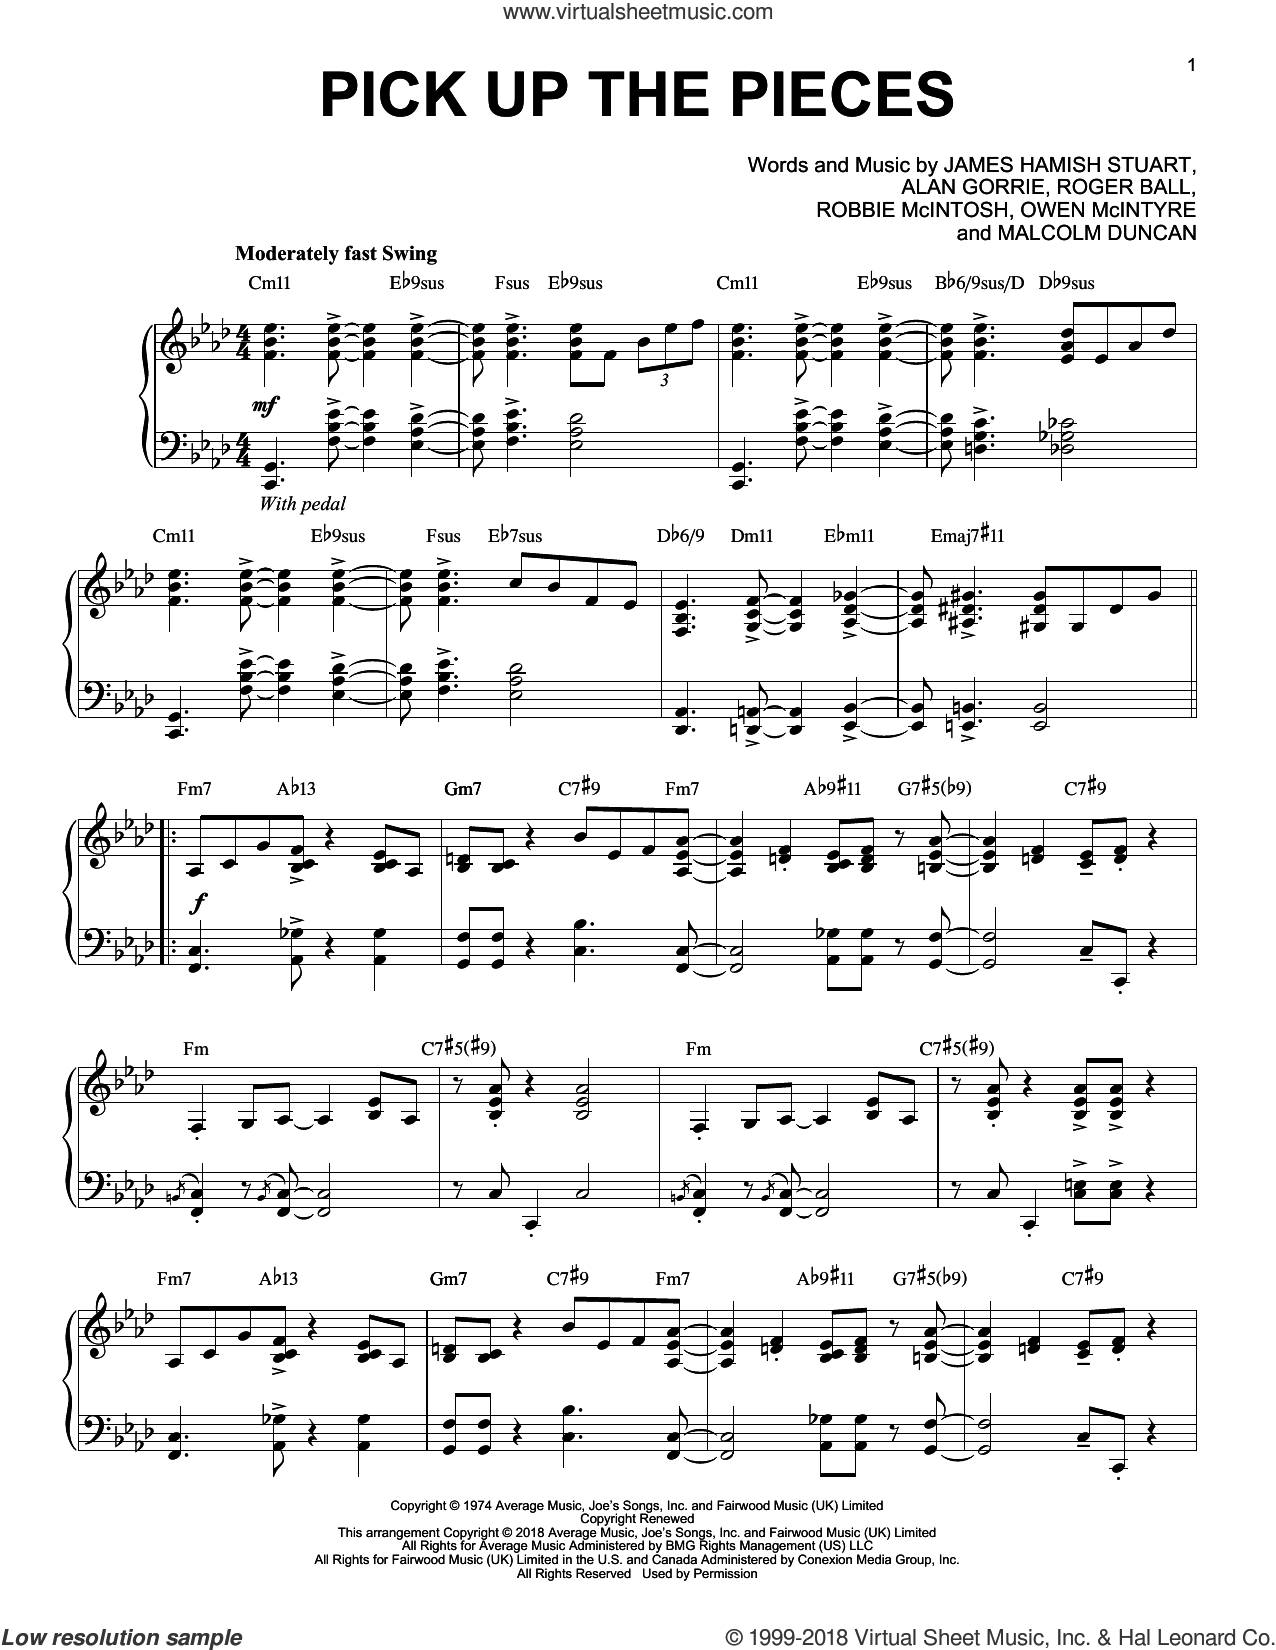 Pick Up The Pieces [Jazz version] sheet music for piano solo by Average White Band, Alan Gorrie, James Hamish Stuart, Malcolm Duncan, Owen McIntyre, Robbie McIntosh and Roger Ball, intermediate skill level